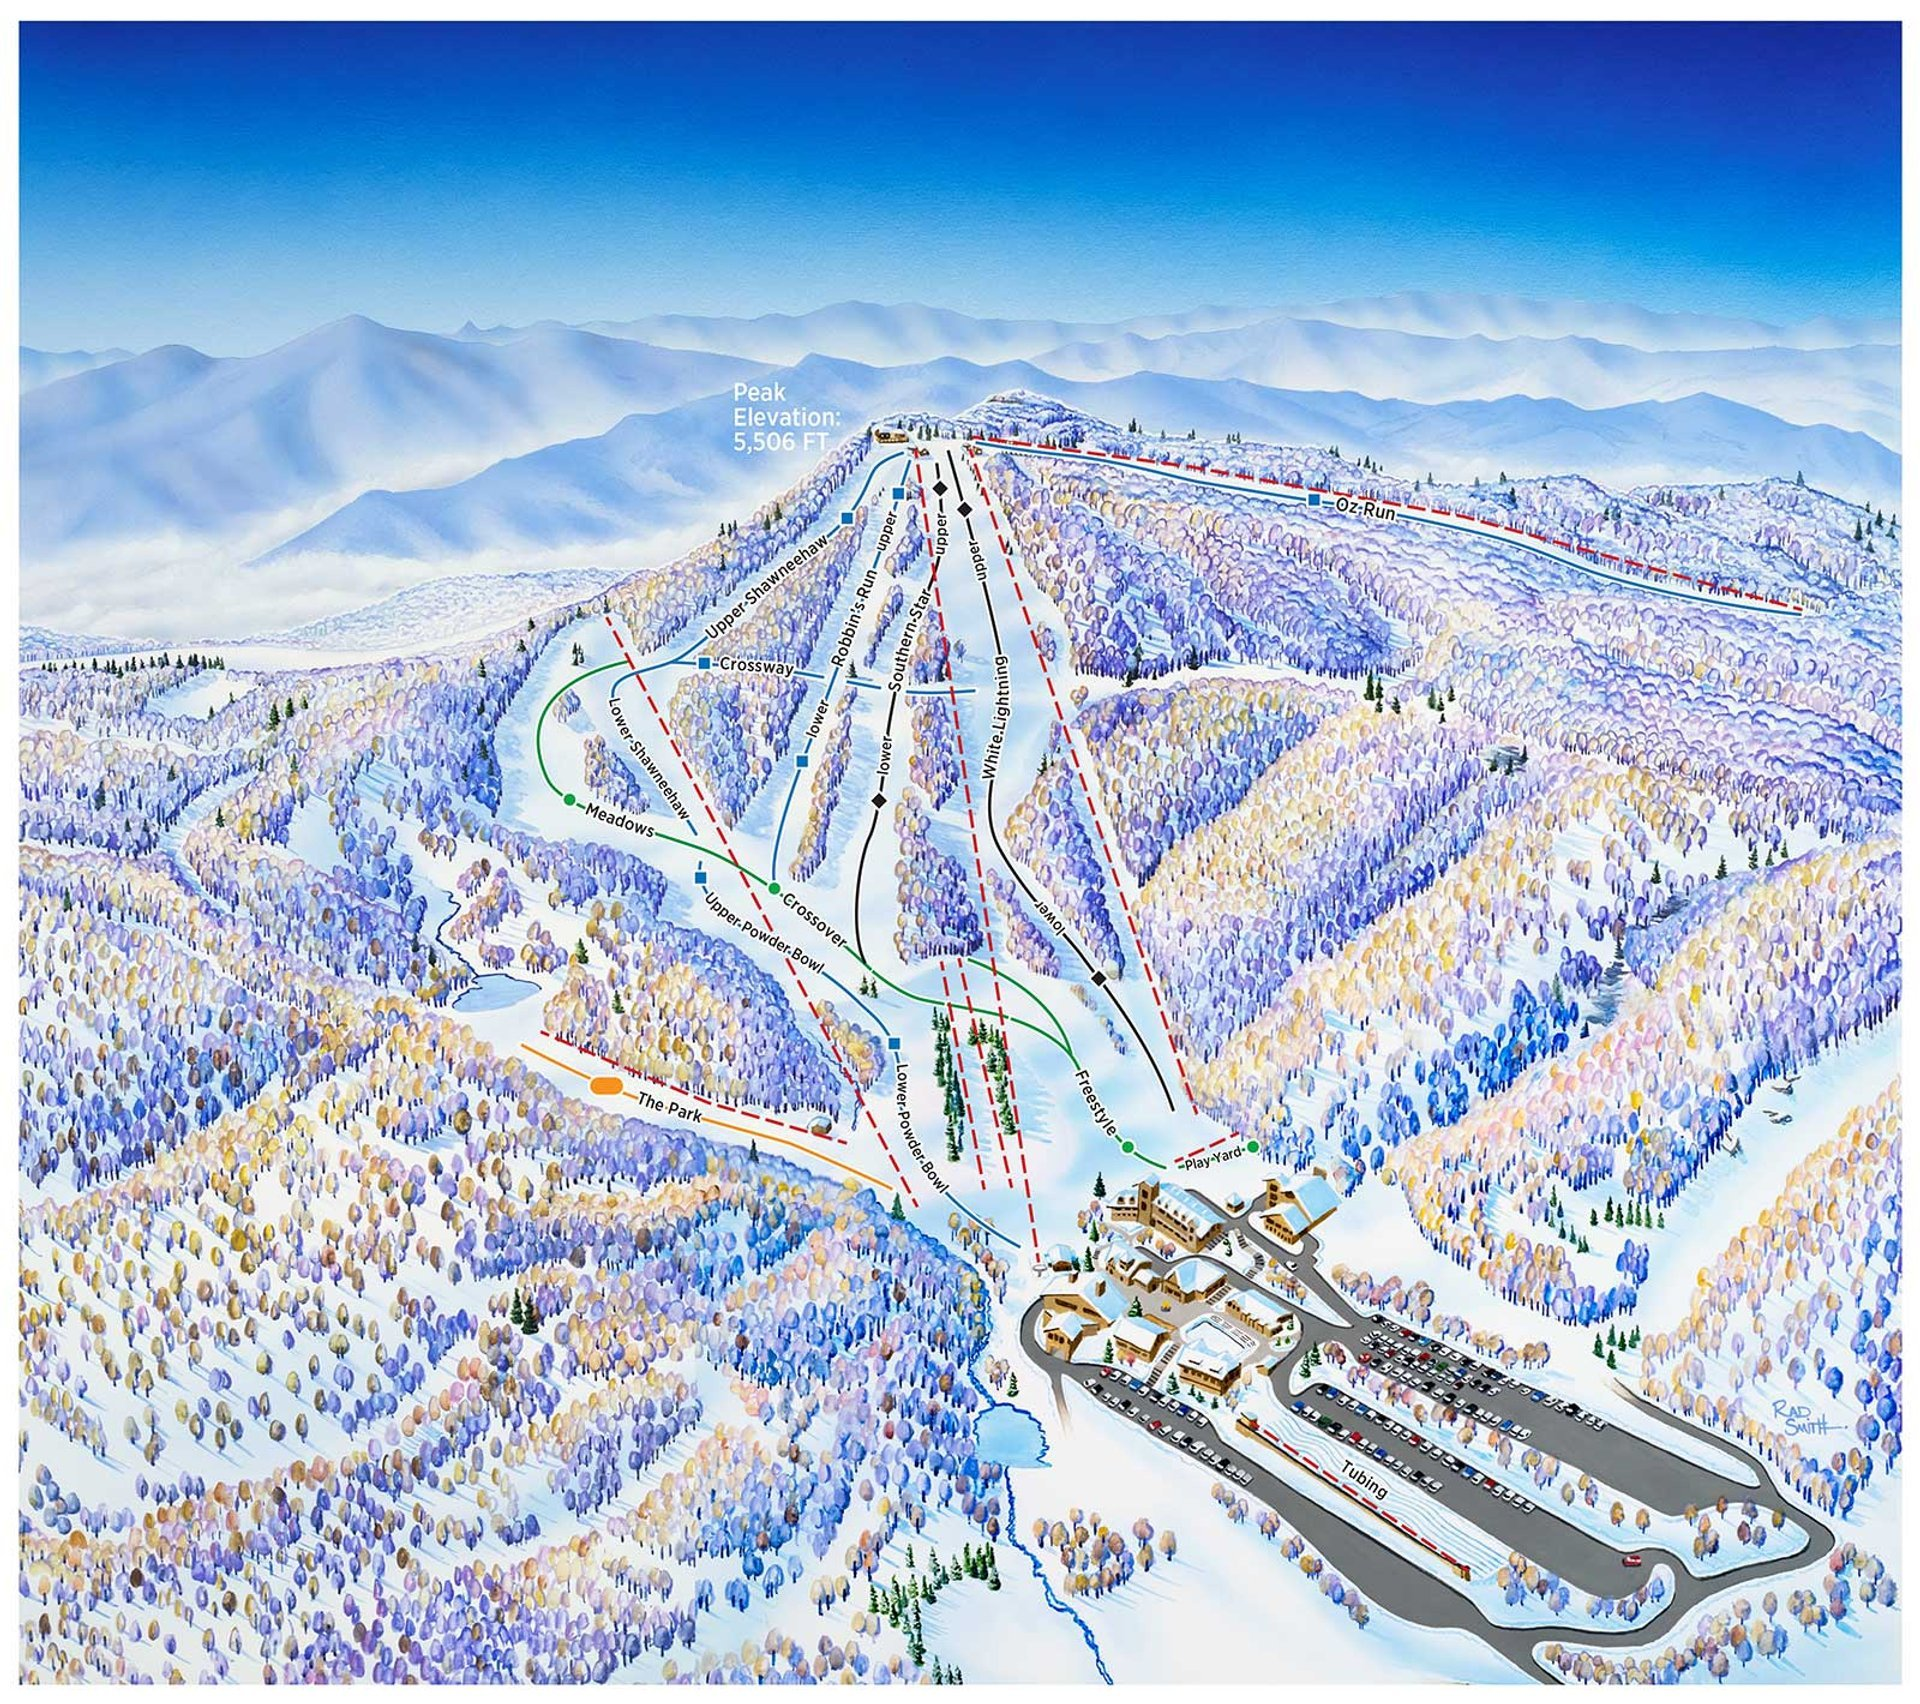 Best time to see Skiing and Snowboarding 2020